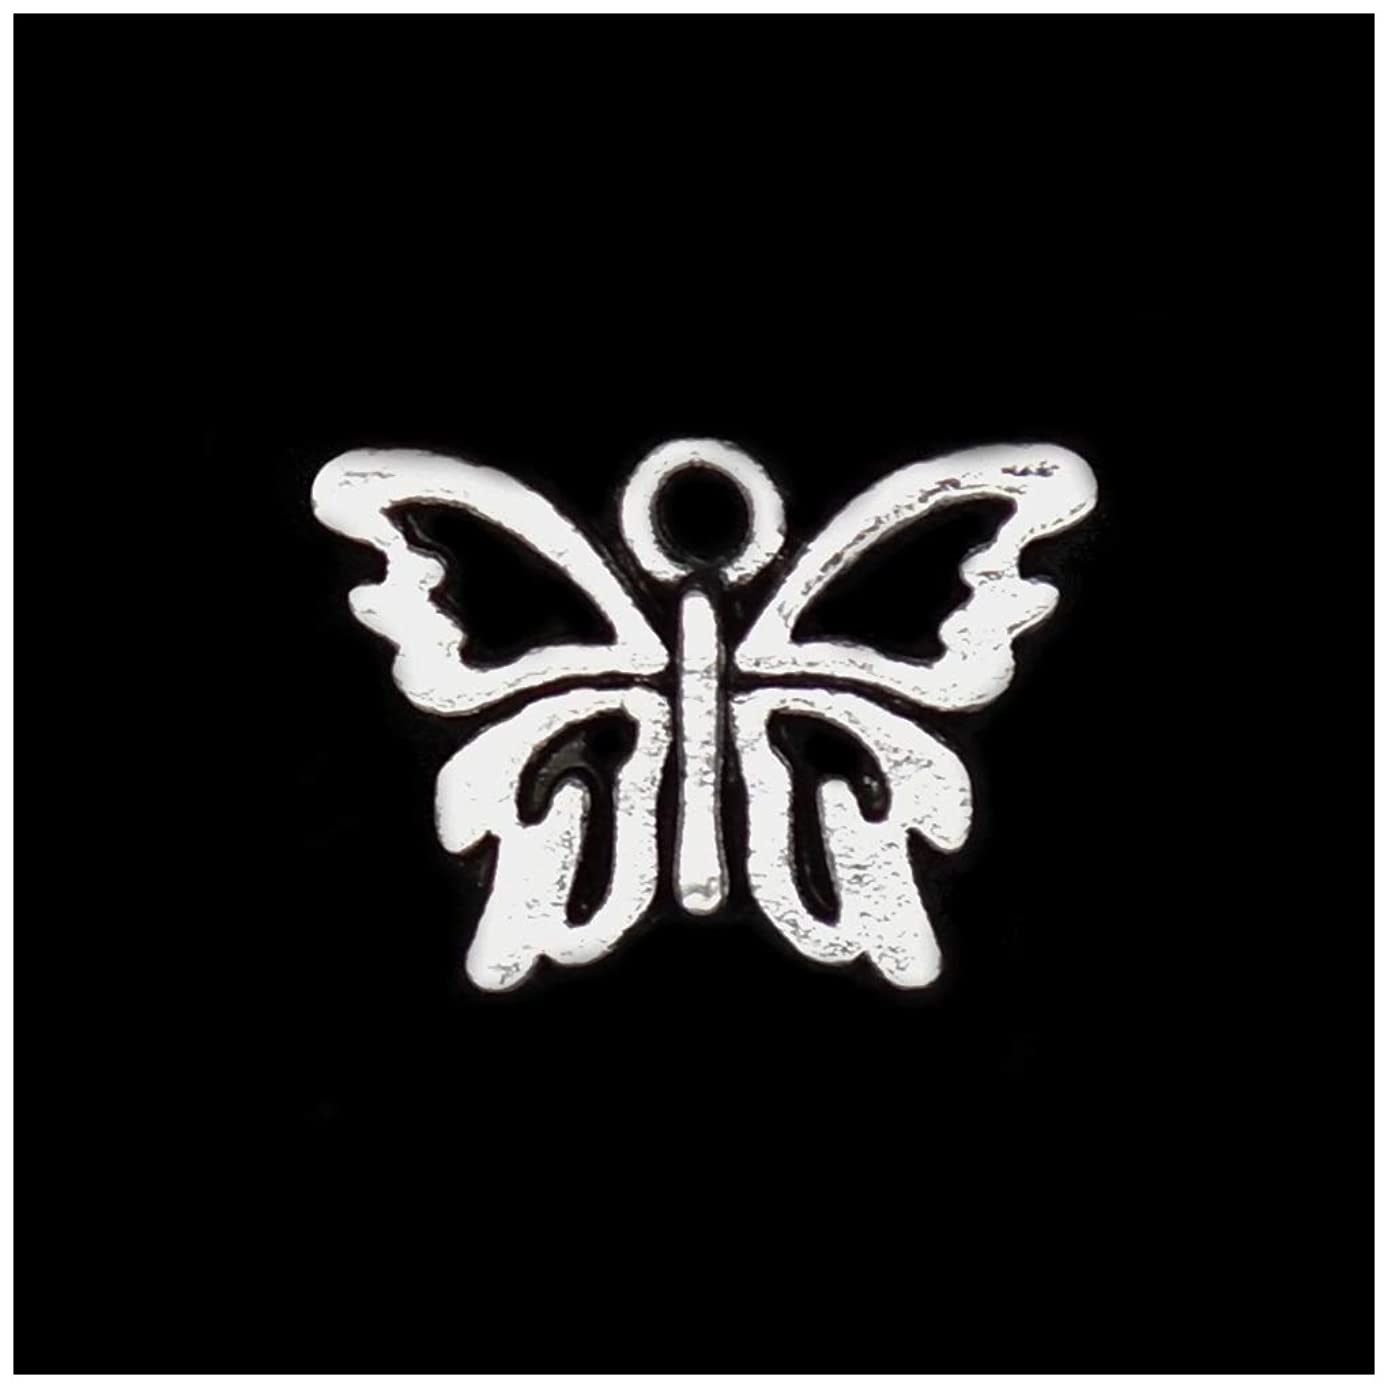 Pack of 80 Butterfly Charms Pendants Silver Craft Supplies for Jewelry Making Tibetan Accessories for Bracelets Necklace DIY